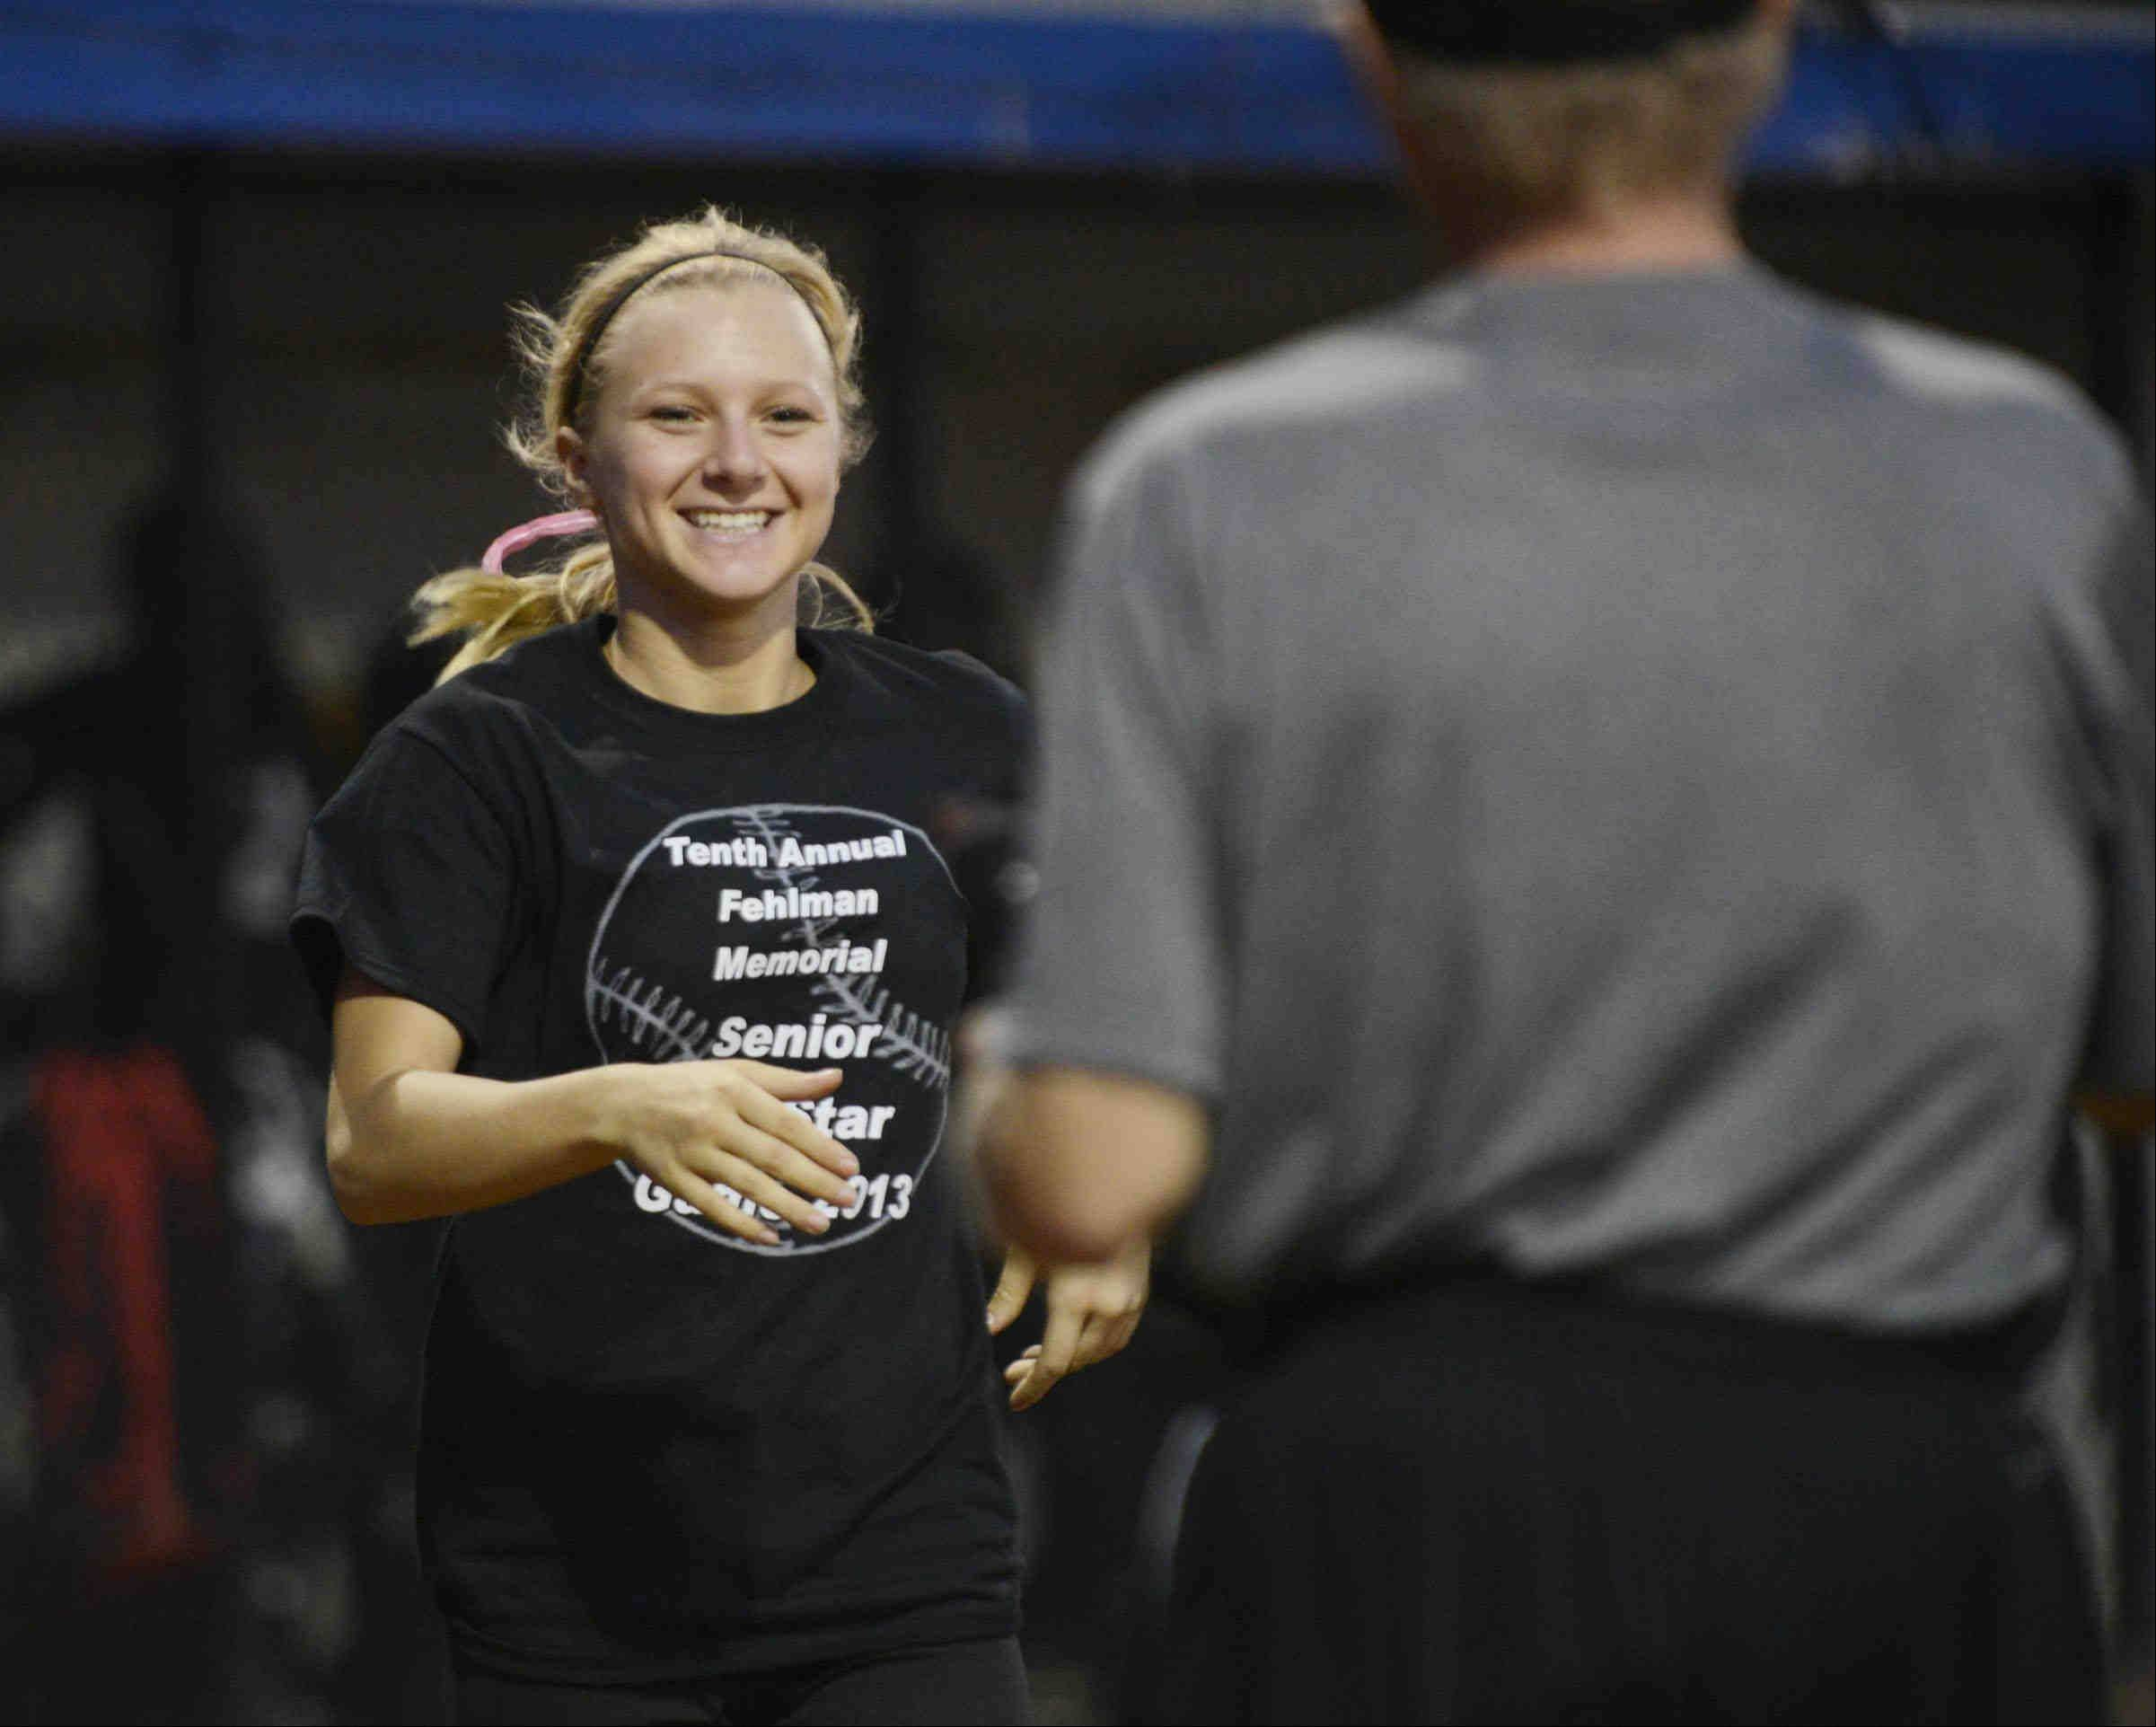 East All Star Rachel Odolski comes to accept her MVP trophy from Daily Herald Fox Valley Sports Editor John Radtke Monday after the Tenth Annual Fehlman Memorial Senior All-Star softball game at Judson University.